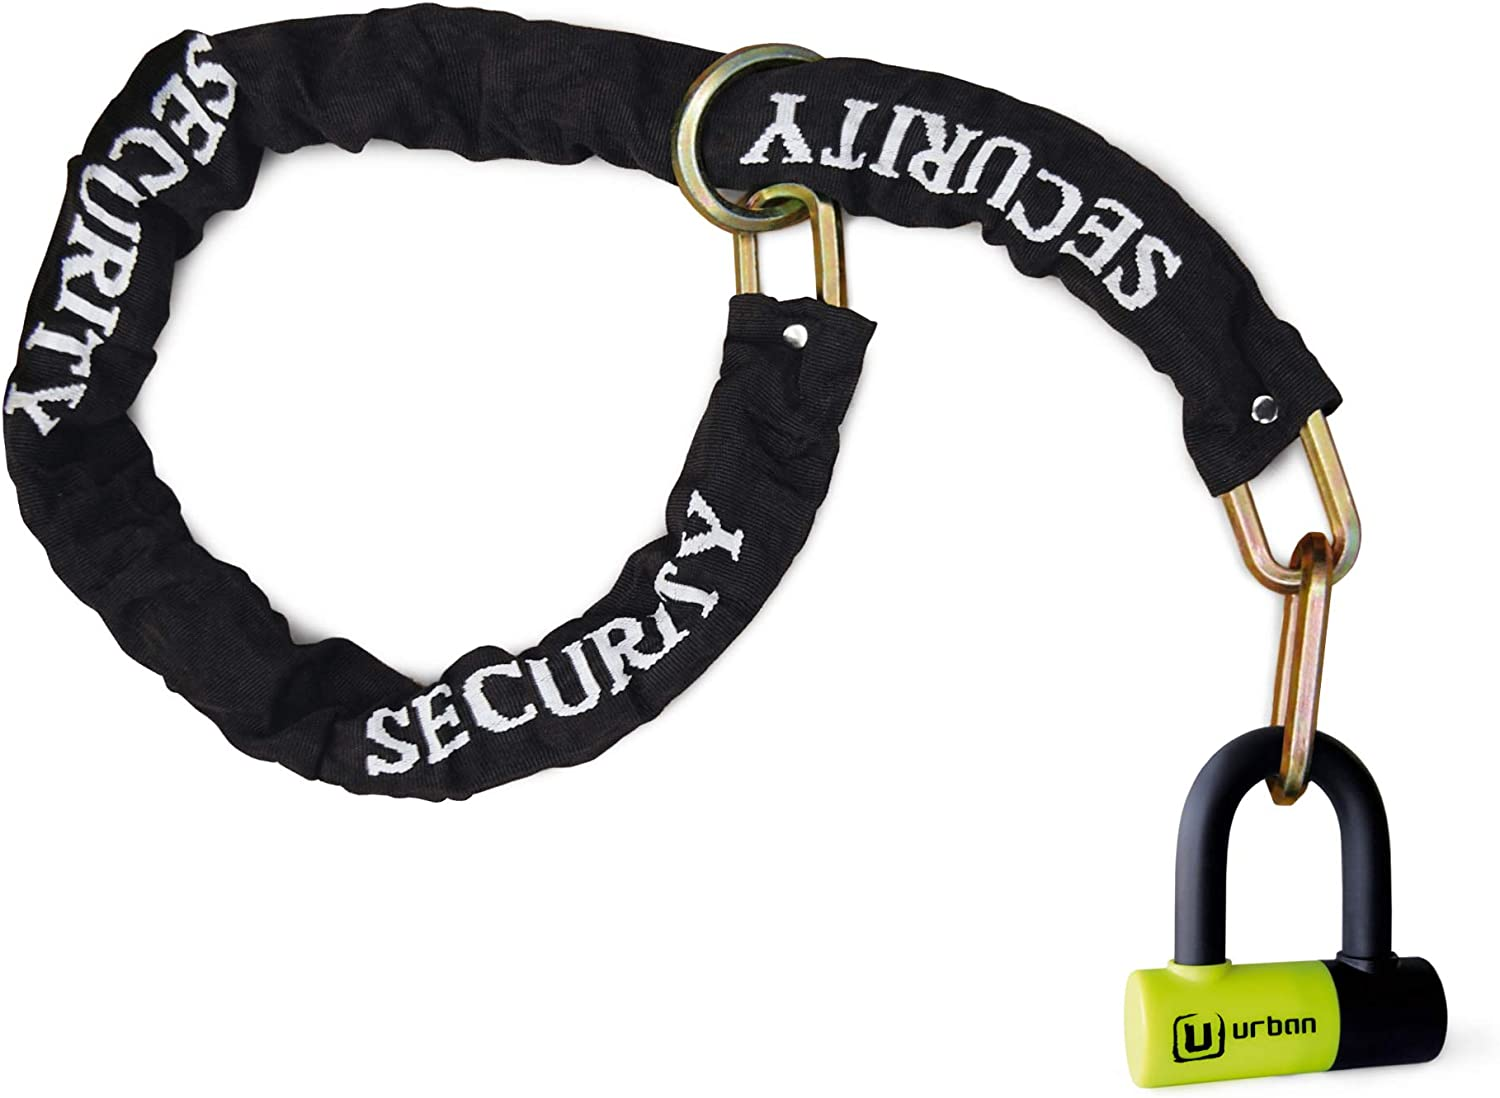 Urban Security Ur59120 Candado Antirrobo Mini U con Cadena Lazo 120 cm